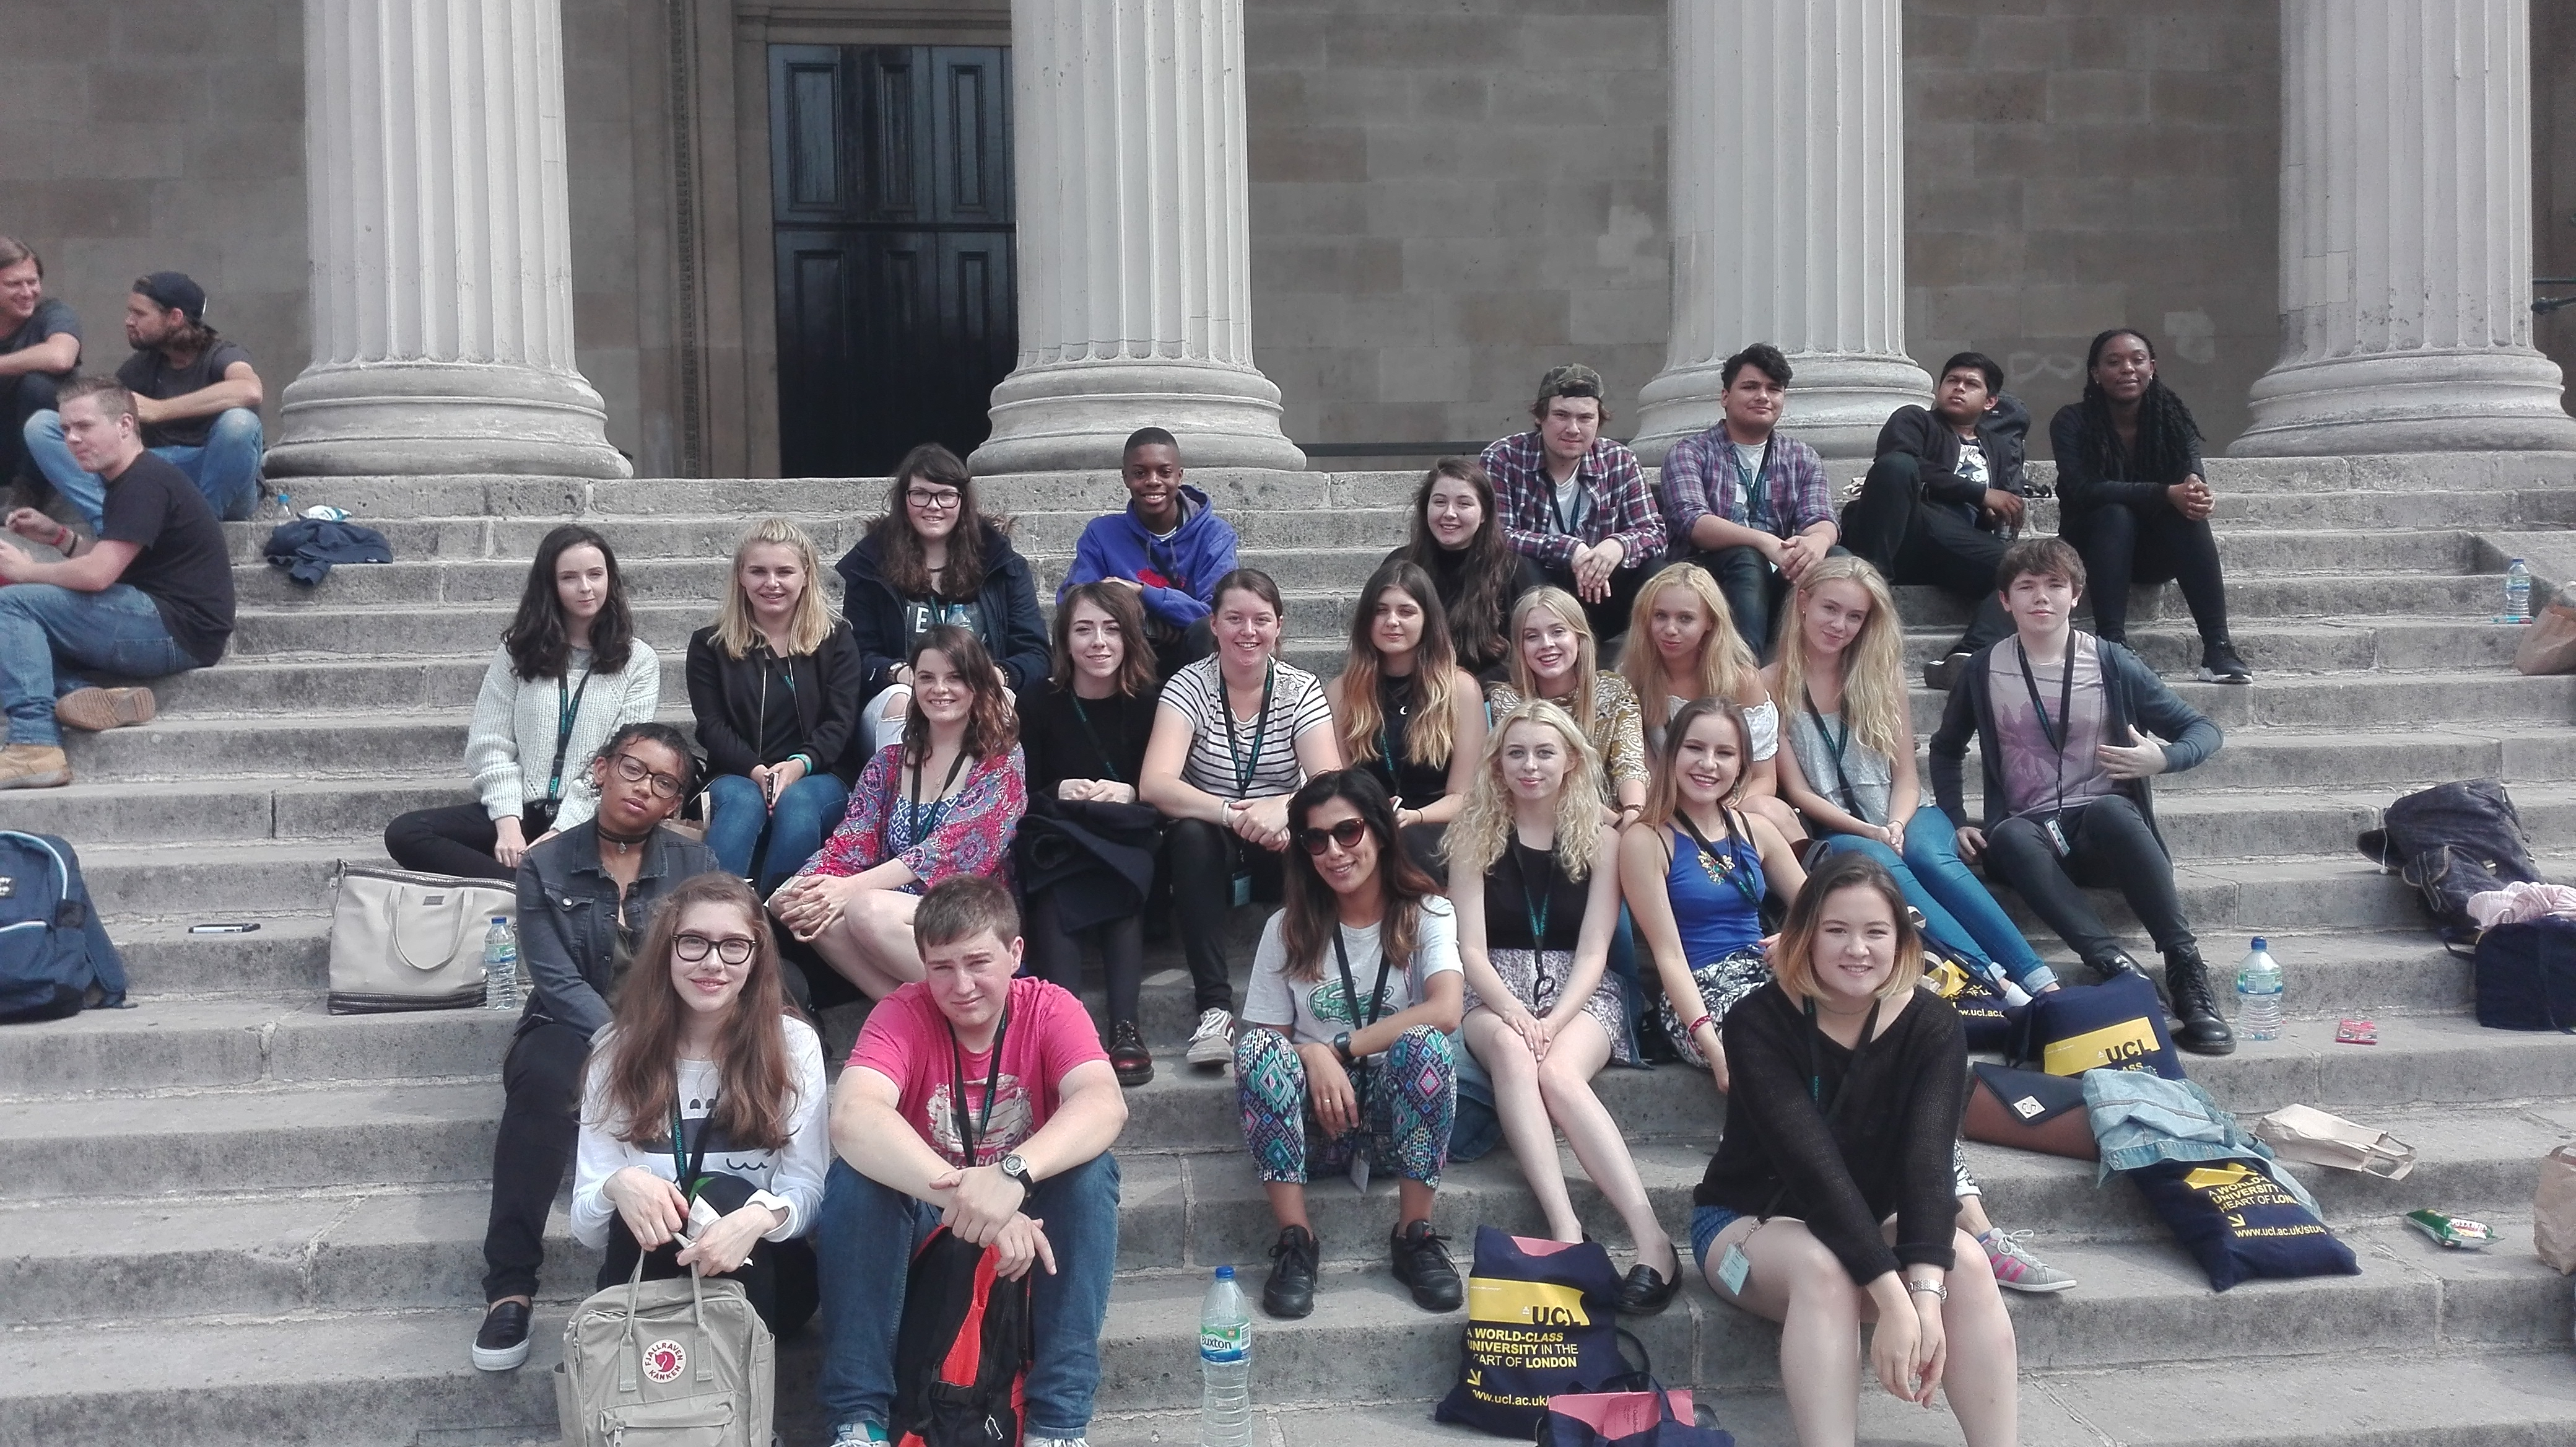 Summer School students on the Portico steps